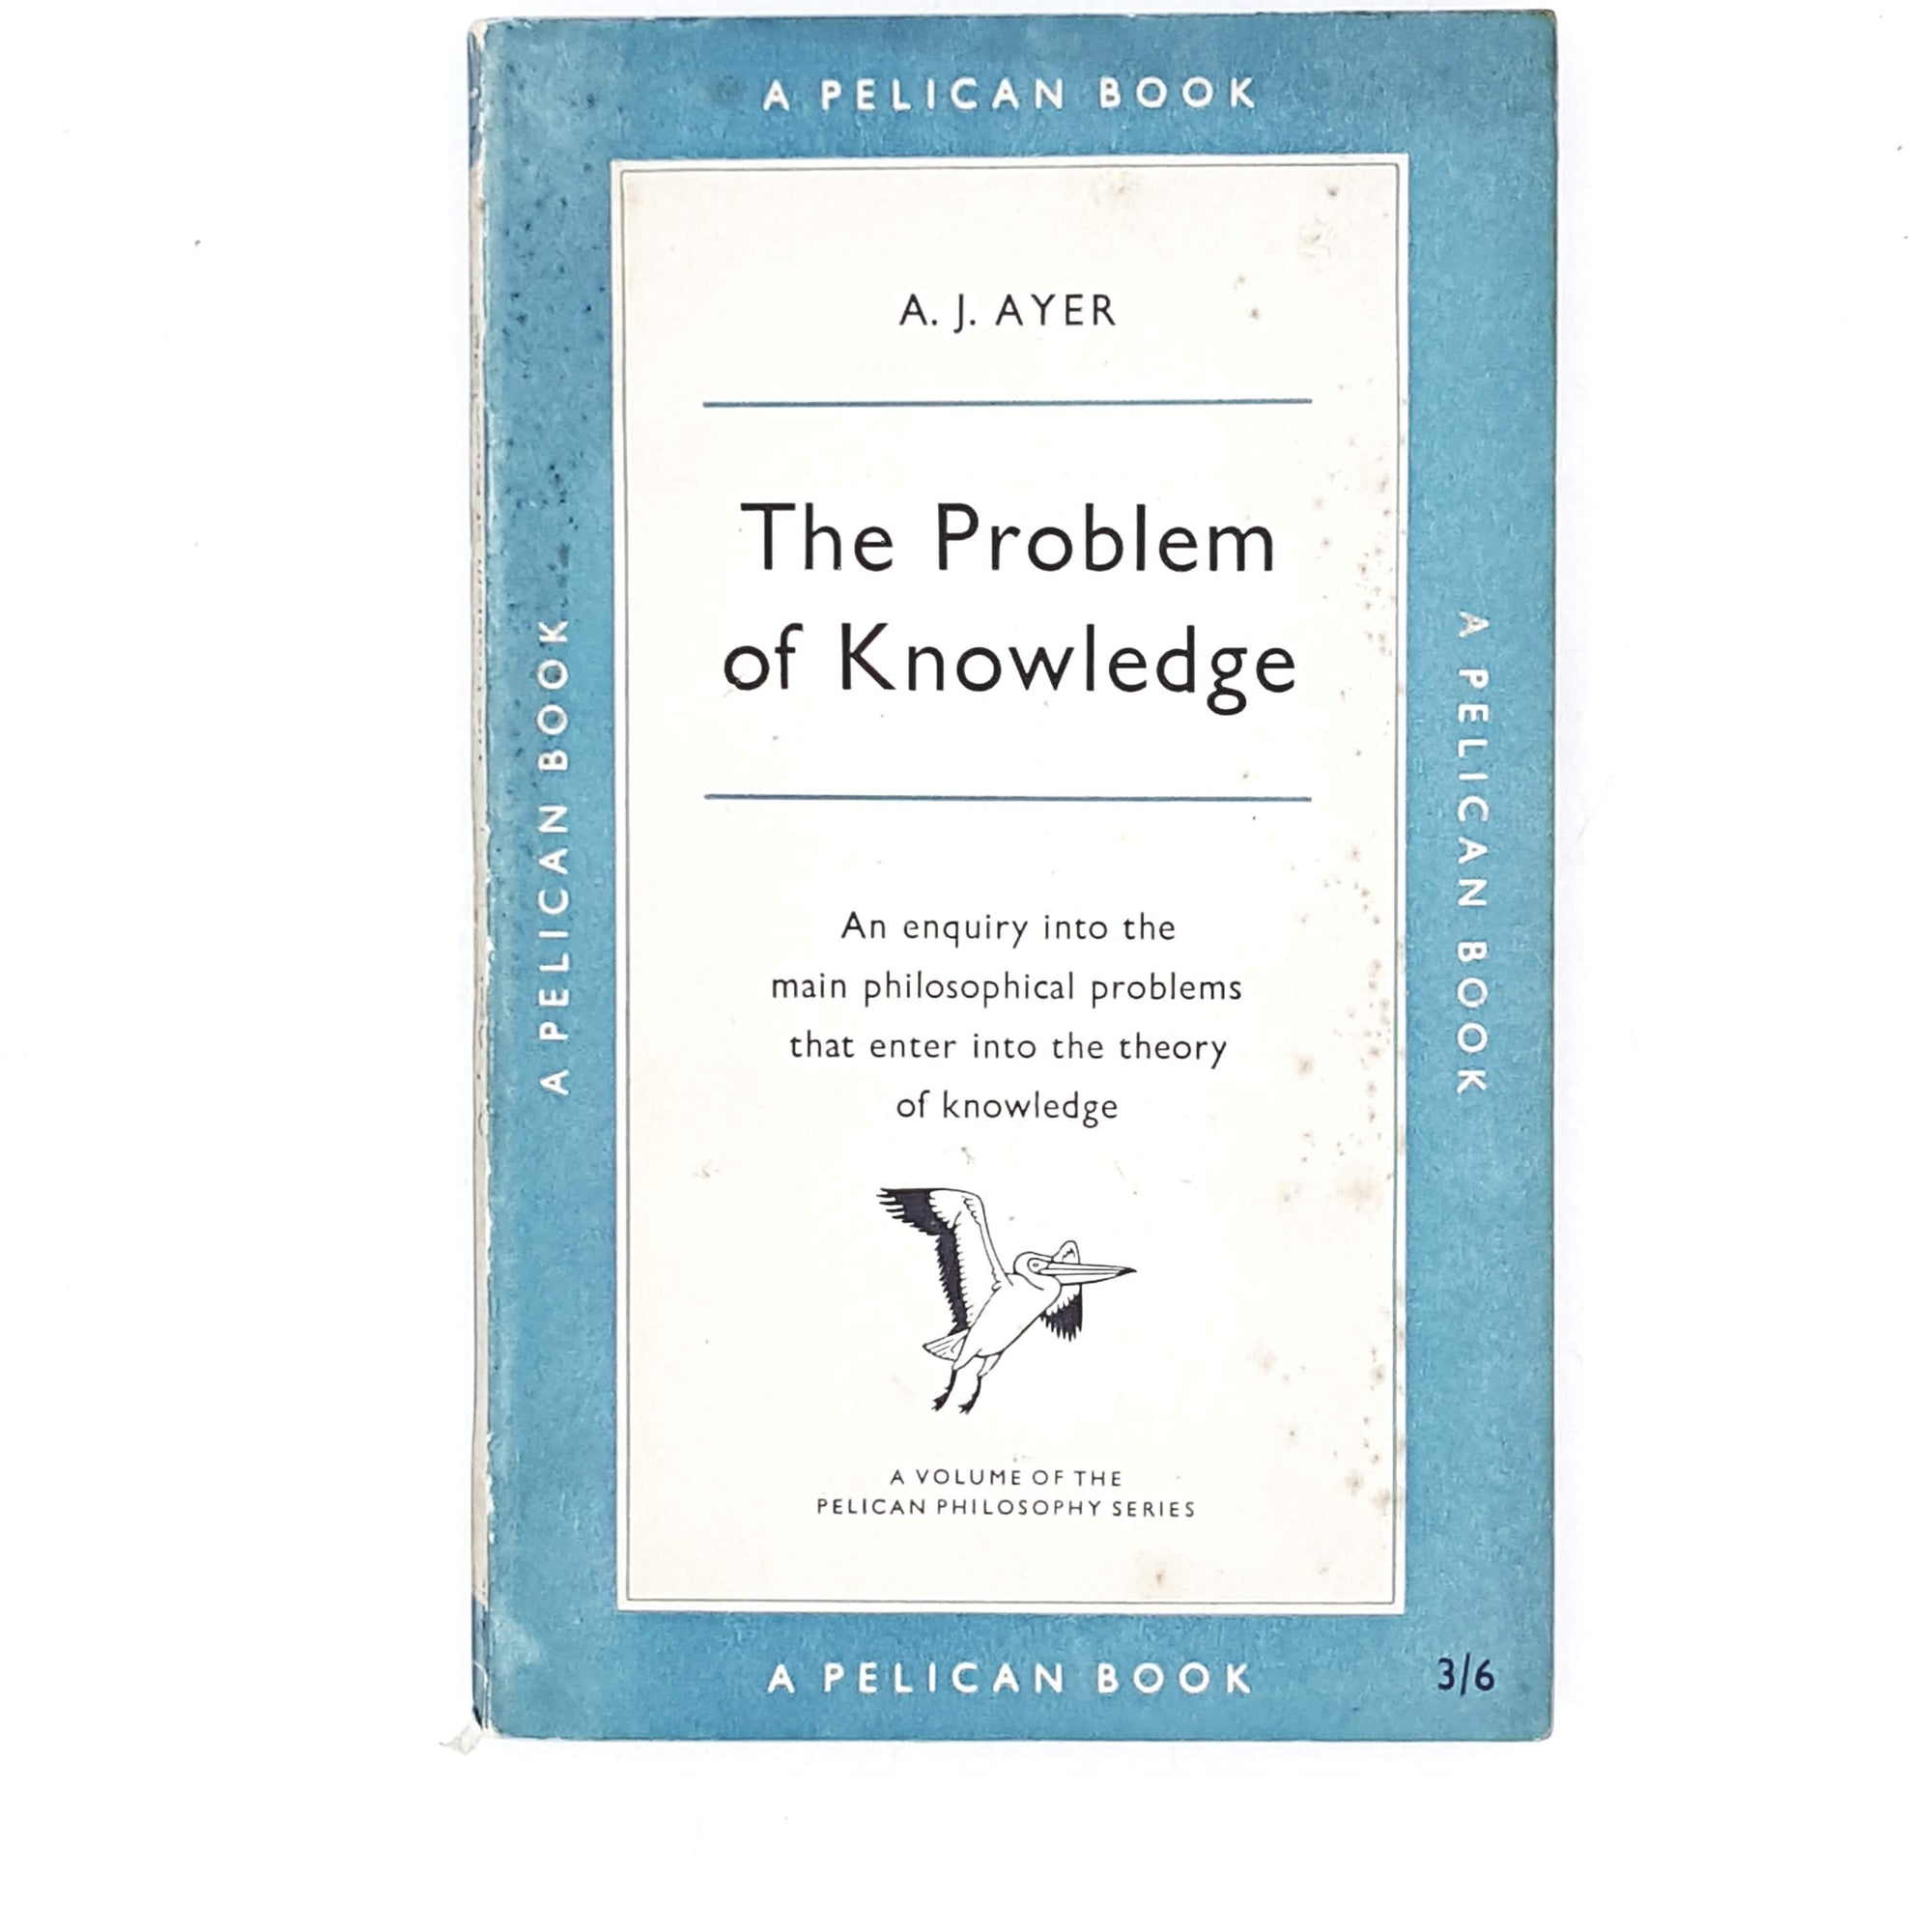 Vintage Pelican The Problem of Knowledge by A. J. Ayer 1956